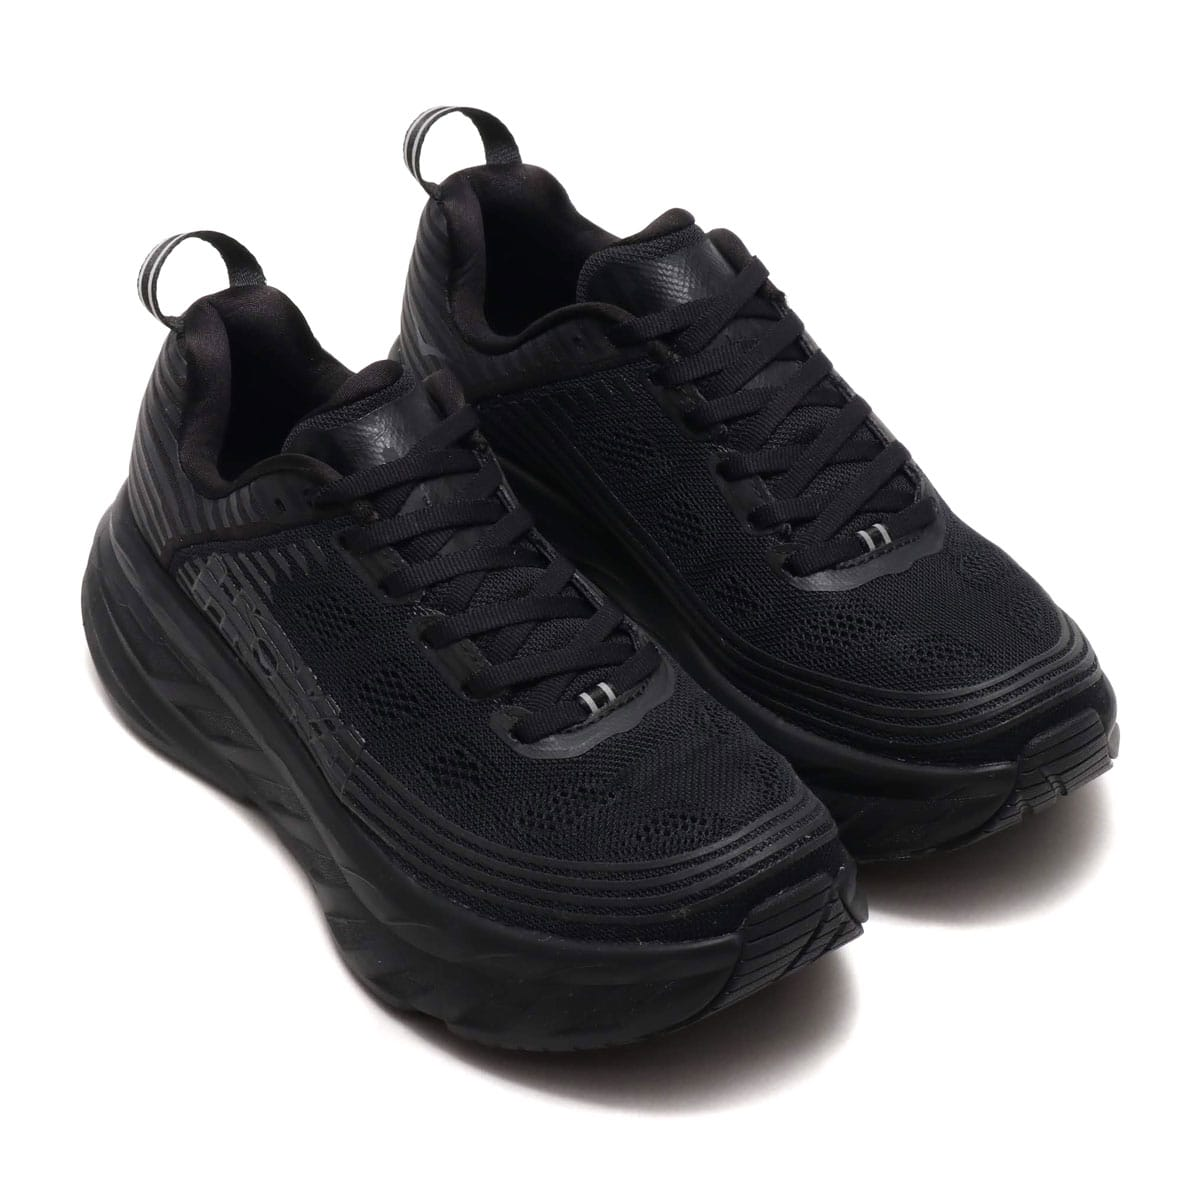 HOKA ONEONE Bondi 6 BLACK/BLACK 19FA-I_photo_large